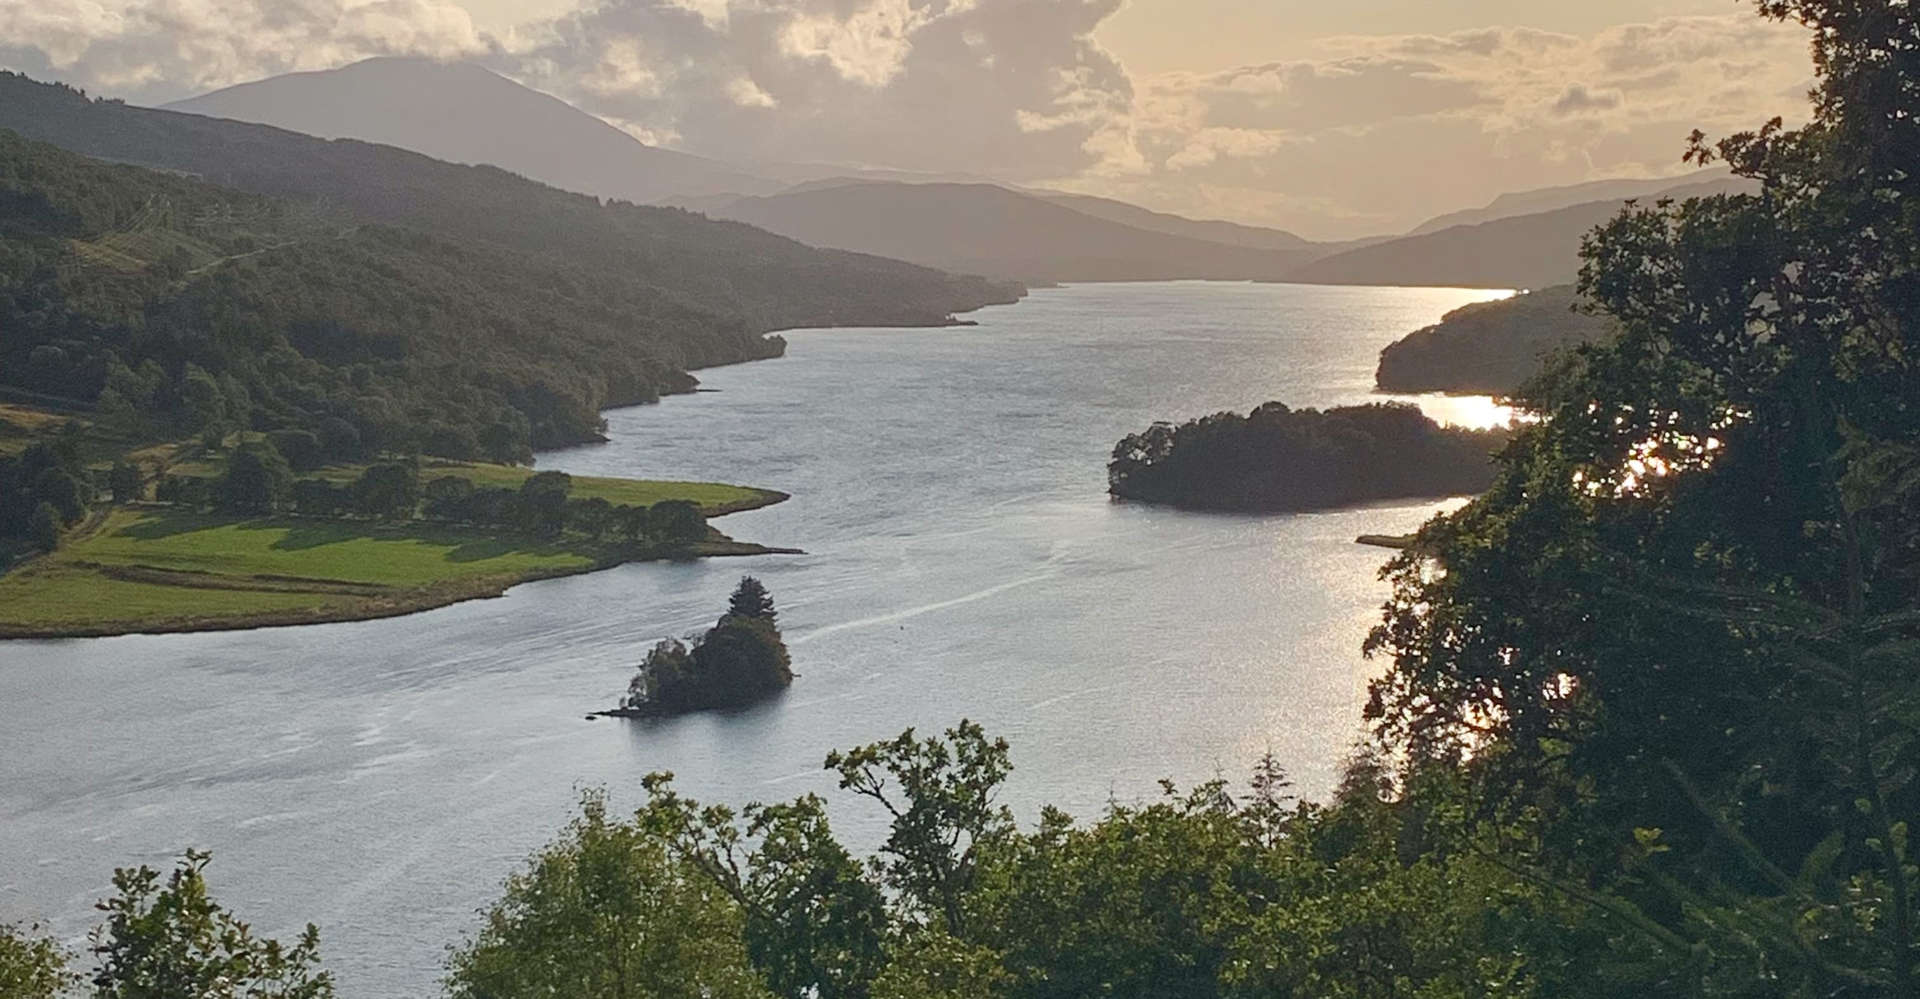 The Queen's View, Loch Tummel & Shiehallion in scotland